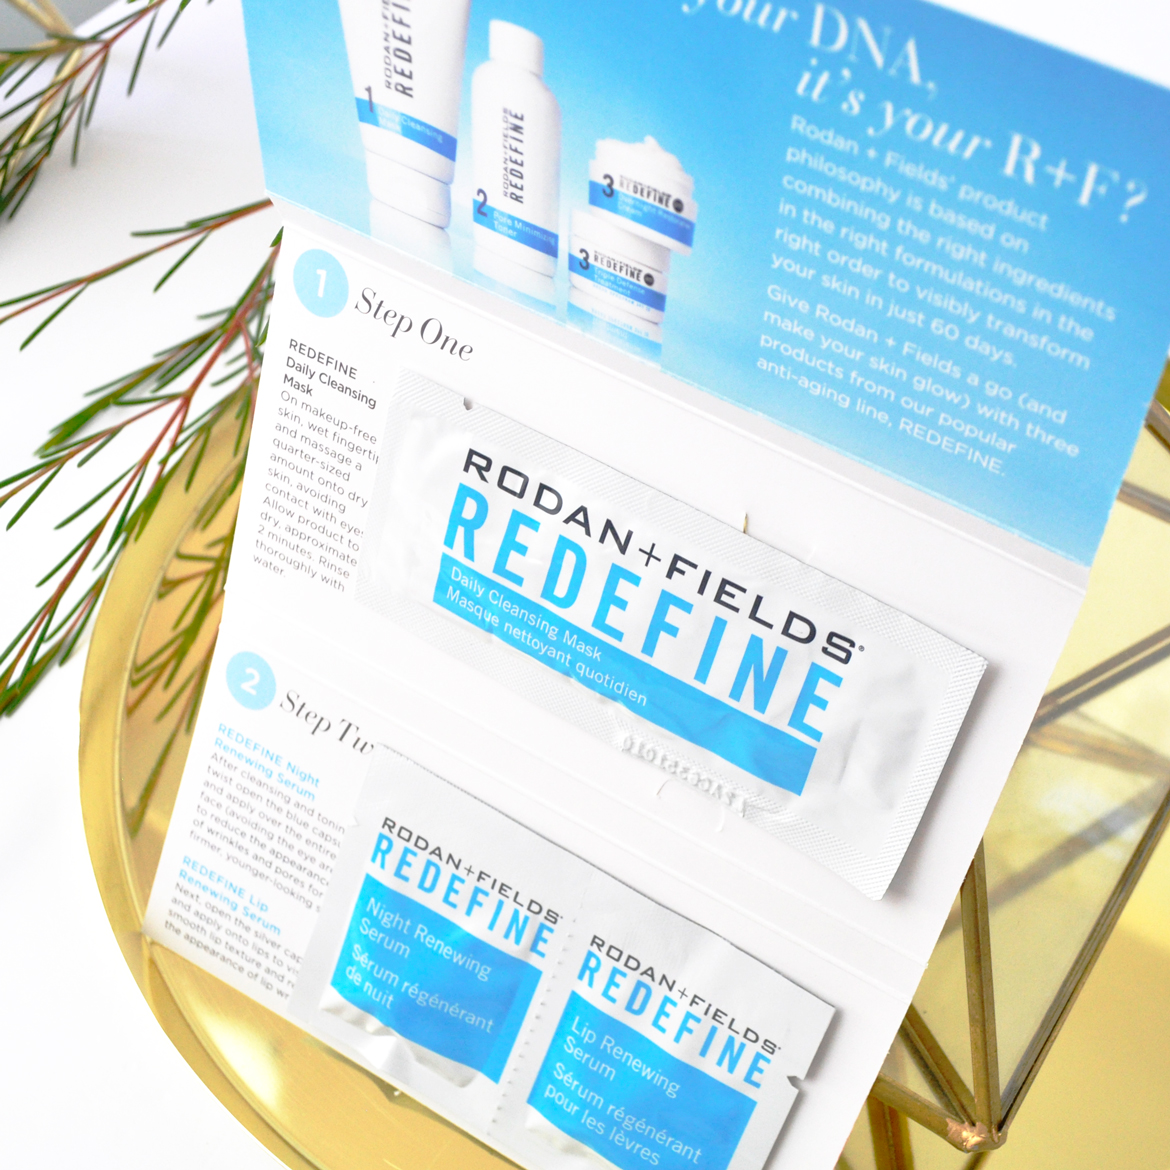 Rodan + Fields Daily Cleansing Mask, Night Renewing Serum and Lip Renewing Serum